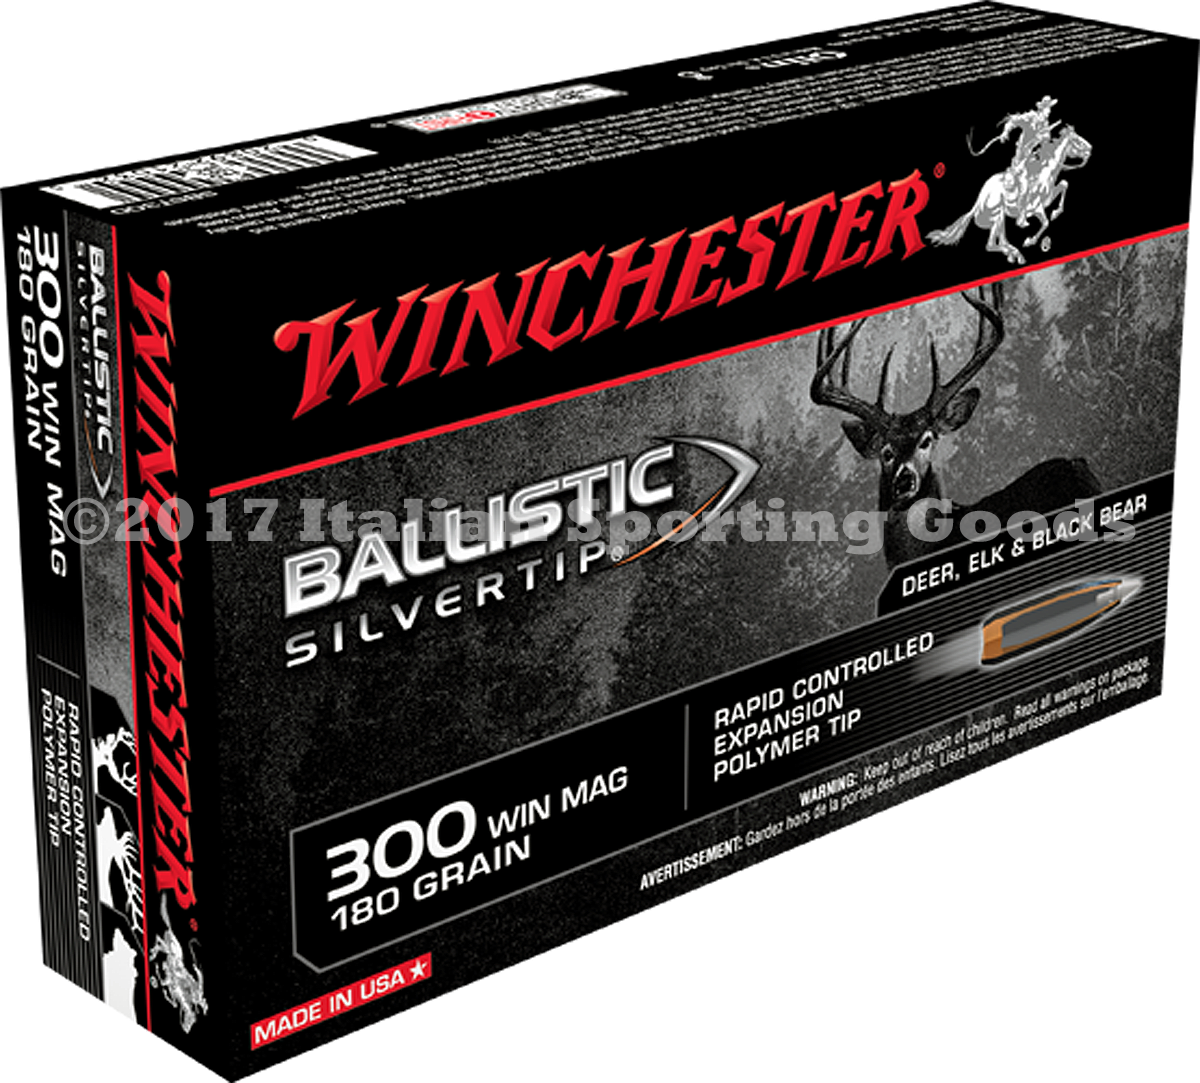 Winchester 300 Win Mag, 180 Gr Ball STip